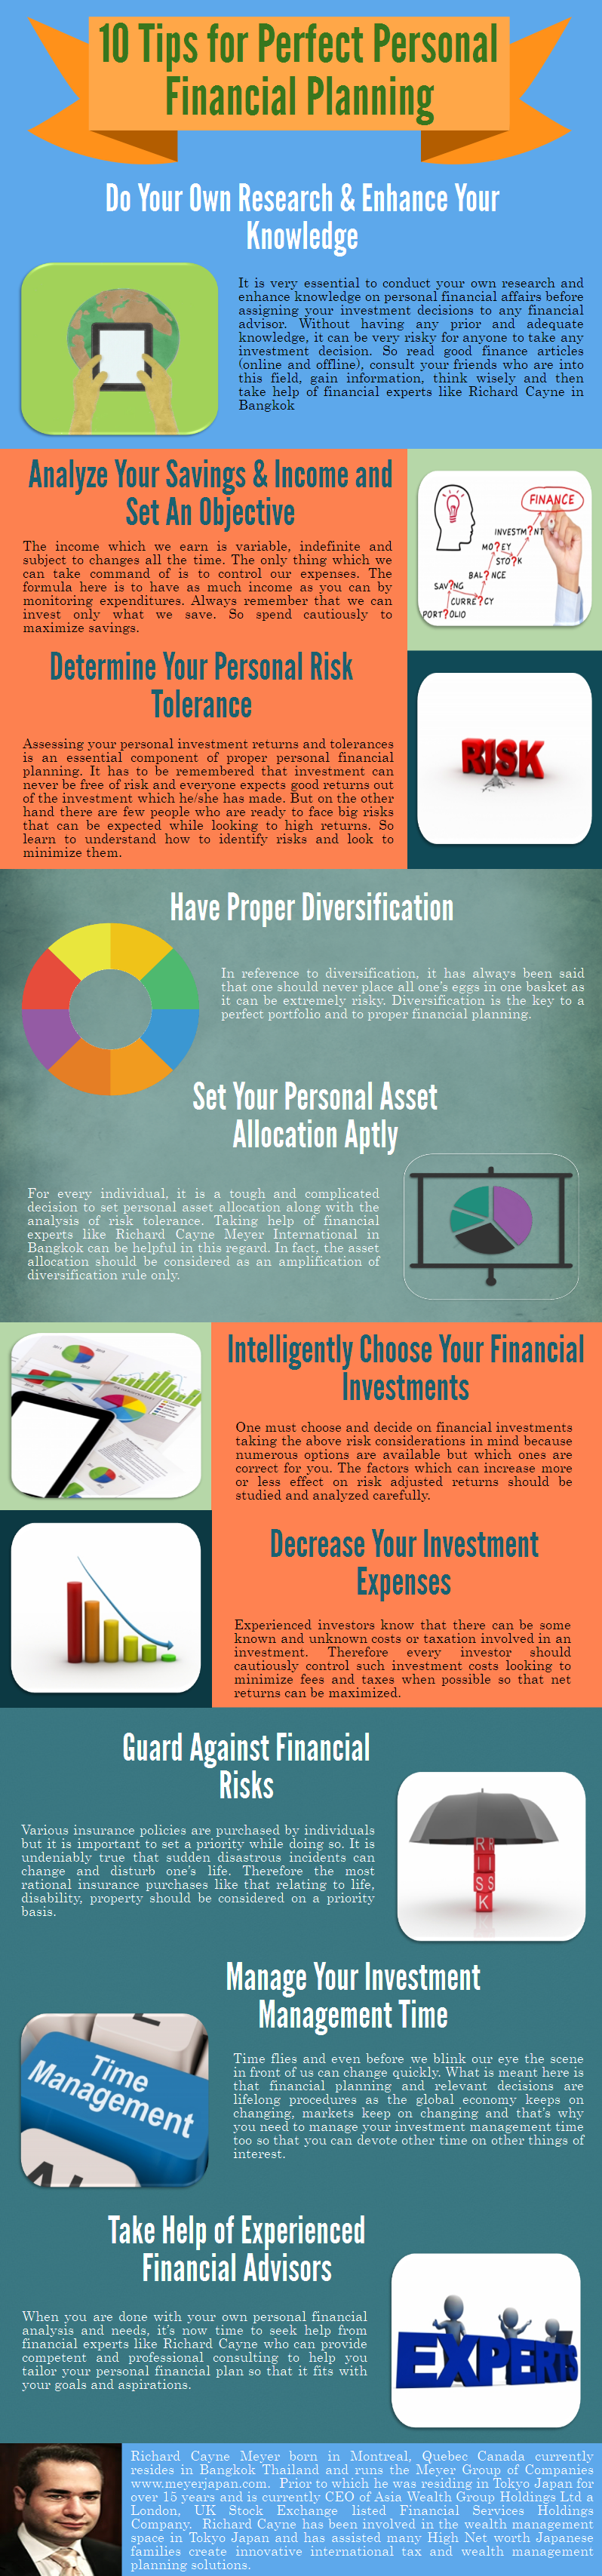 10 Tips for Perfect Personal Financial Planning